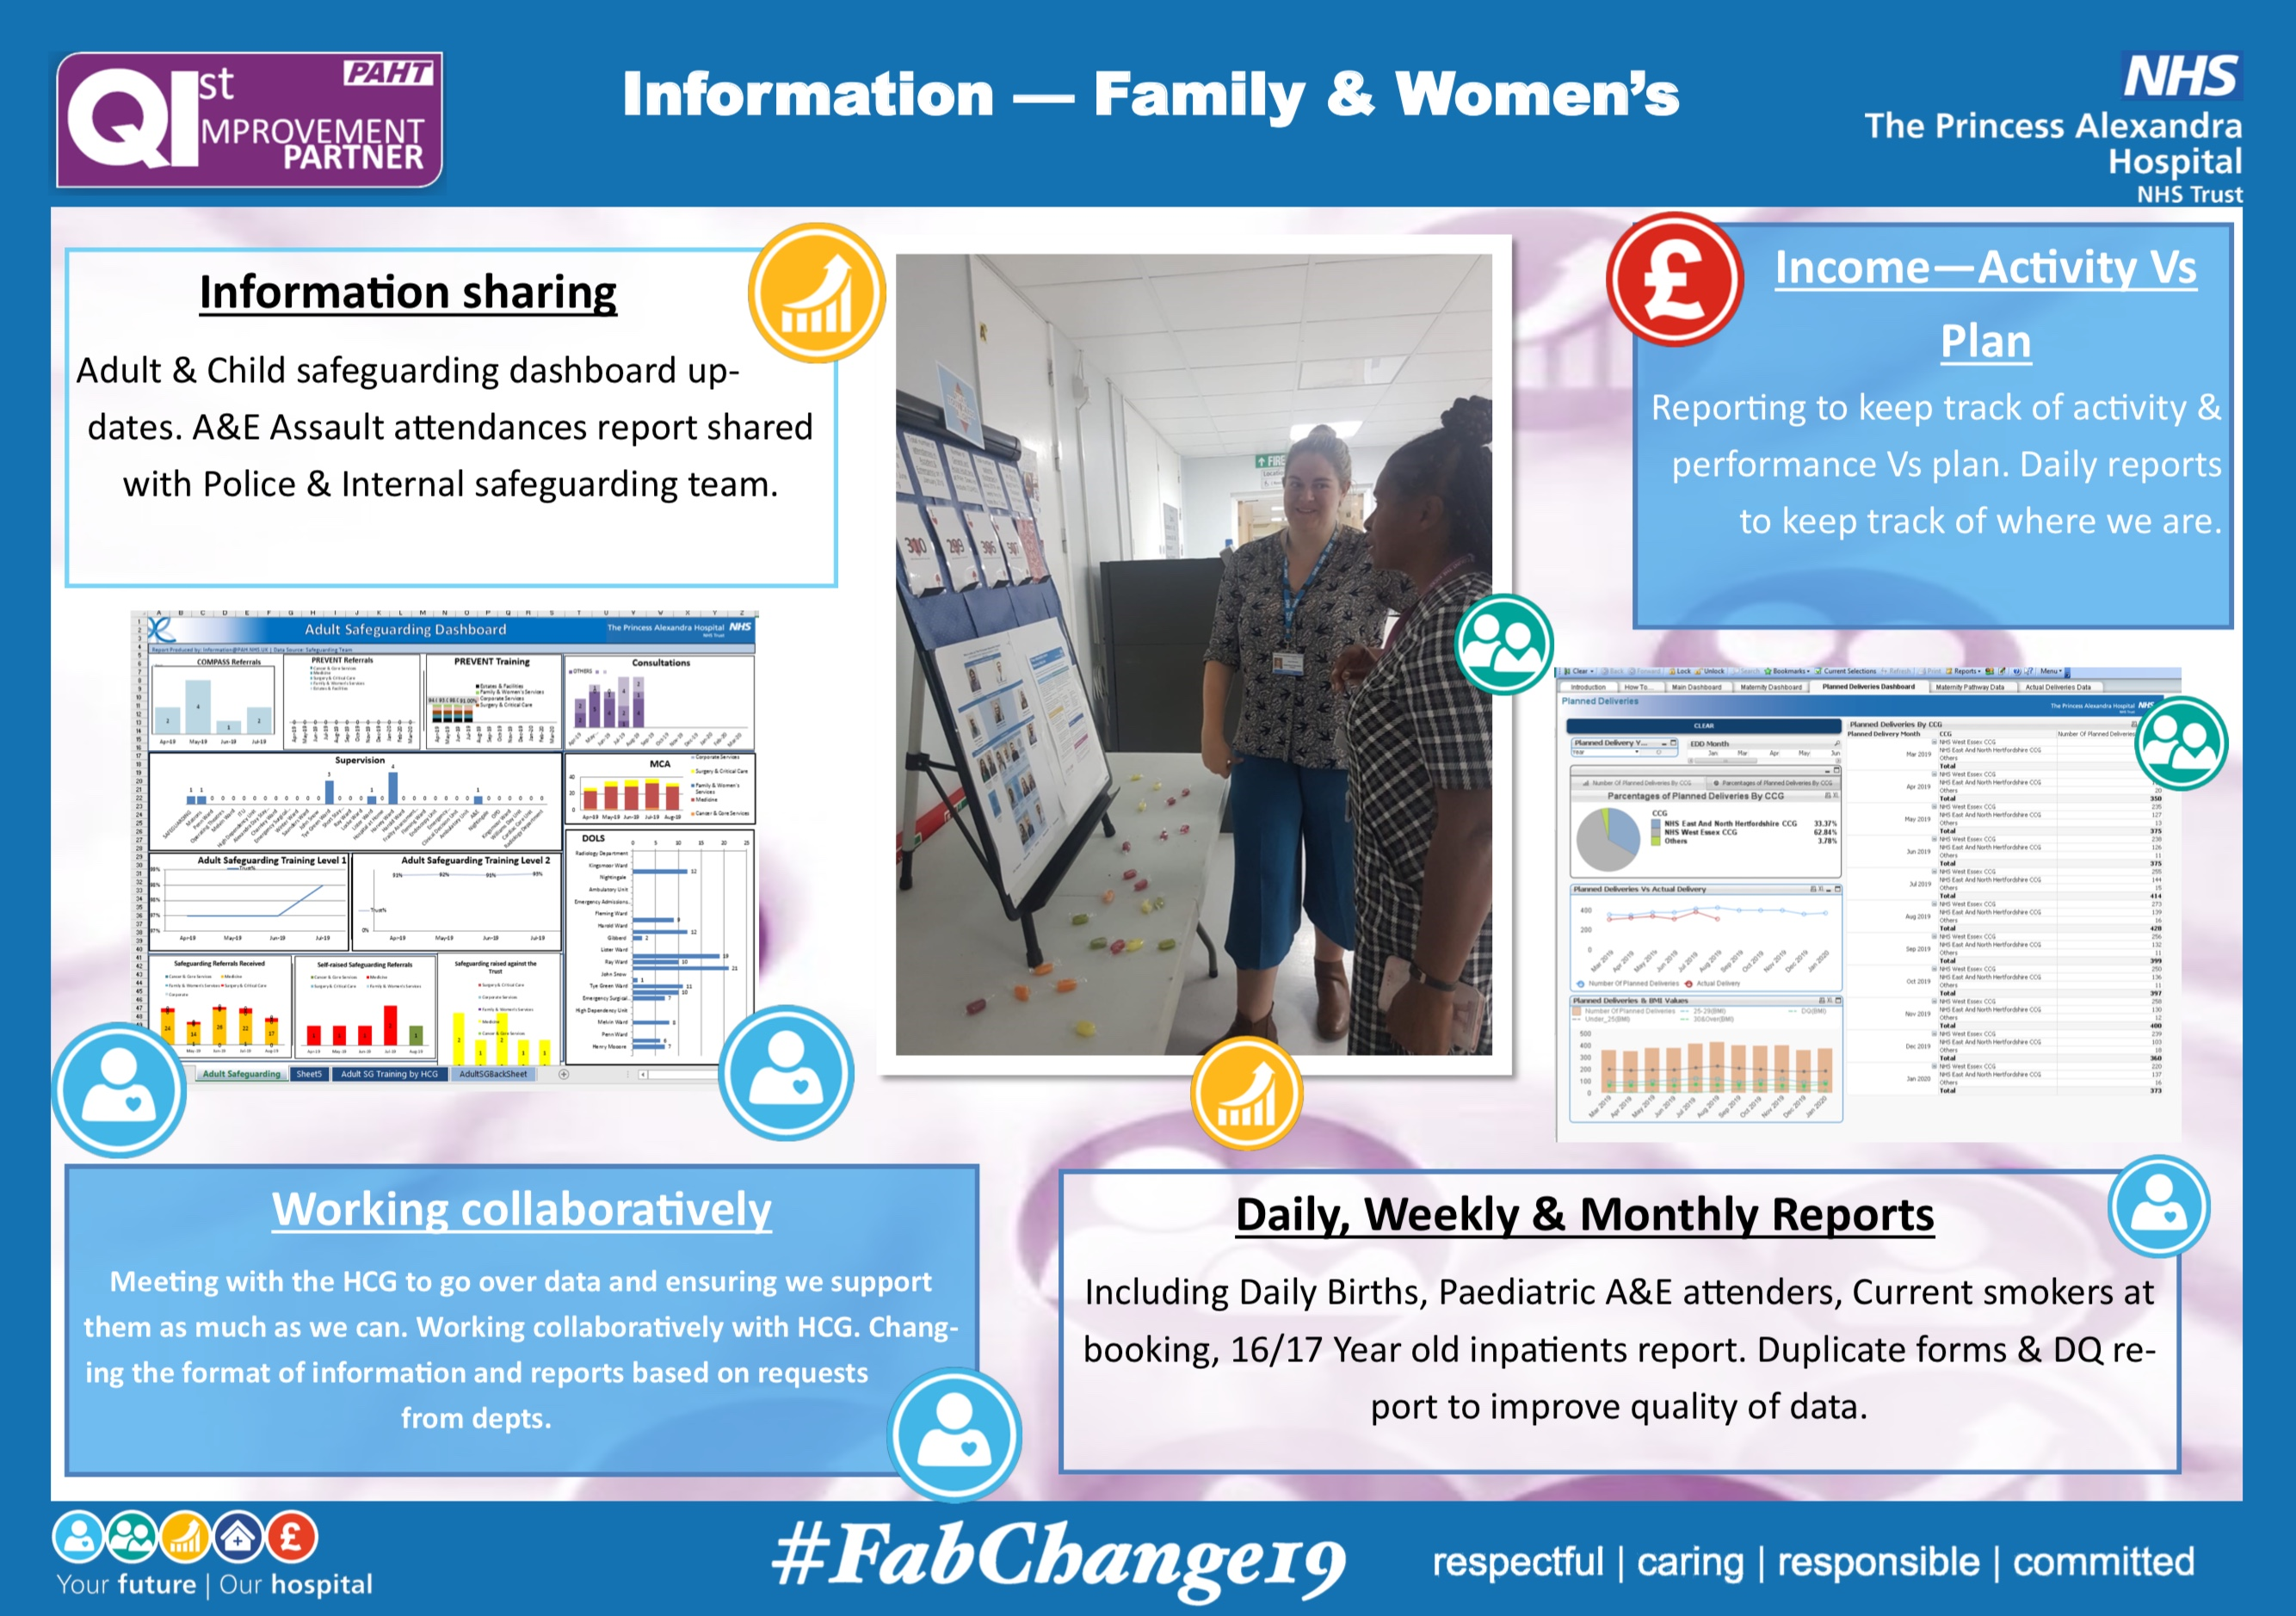 PAHT - Information for Family and Women's Services featured image